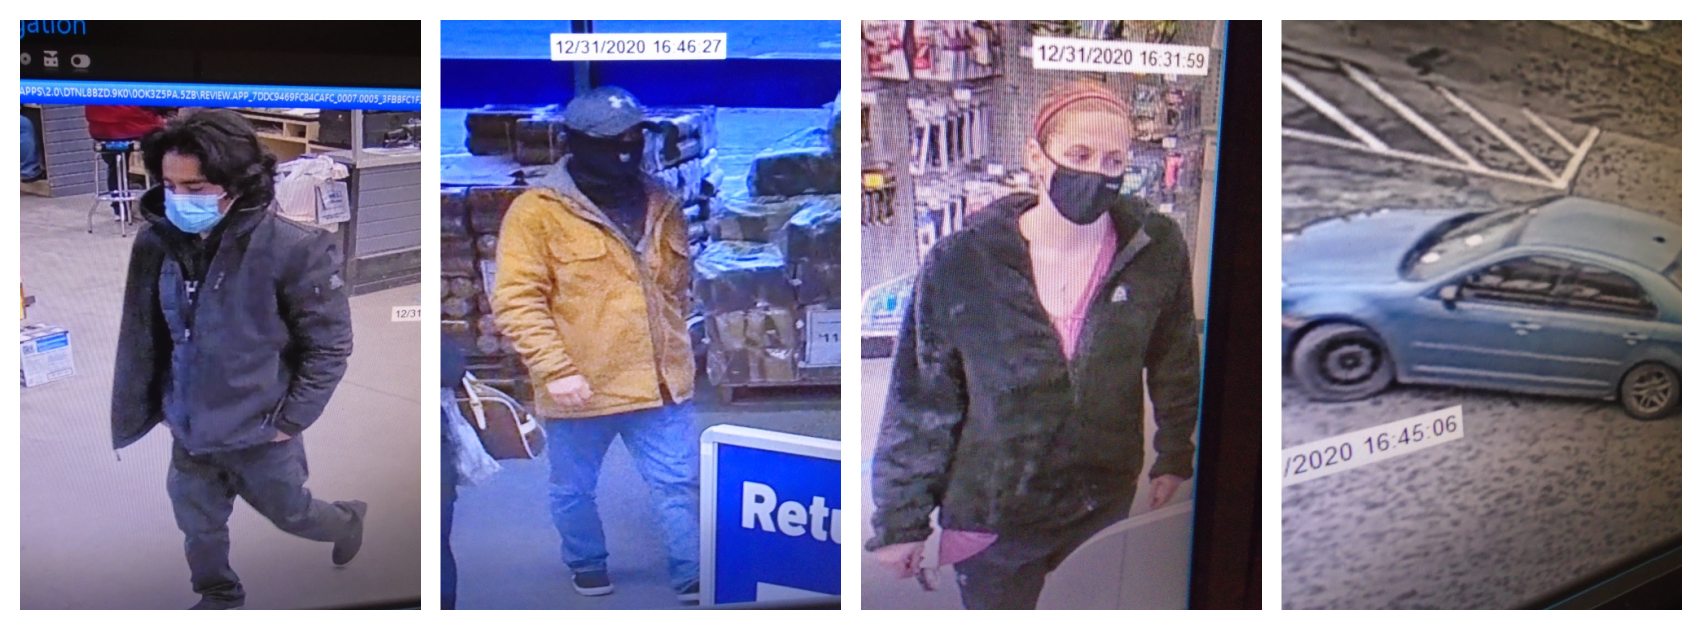 Owasso Police Requesting Assistance Identifying Persons of Interest in Alleged Larceny